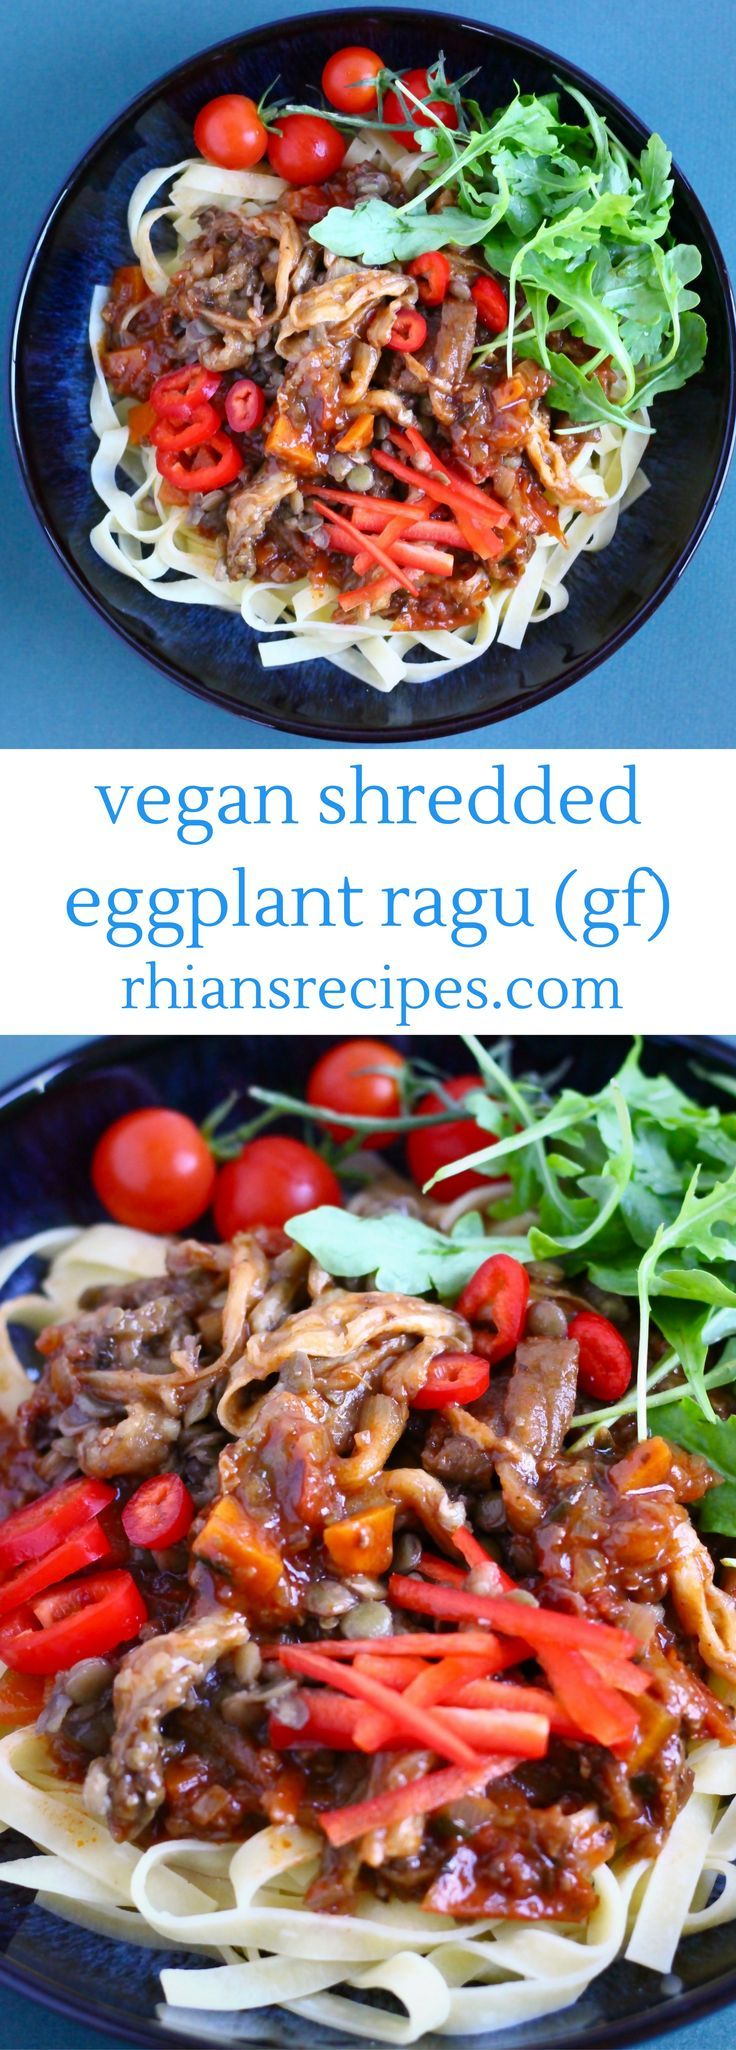 This Vegan Shredded Eggplant (Aubergine) Ragu is the perfect healthy way to warm up on a chilly autumn evening. A delicious meat-free bolognese-type sauce for pasta made using lentils, porcini mushrooms, sundried tomatoes and shredded eggplant. Gluten-free.